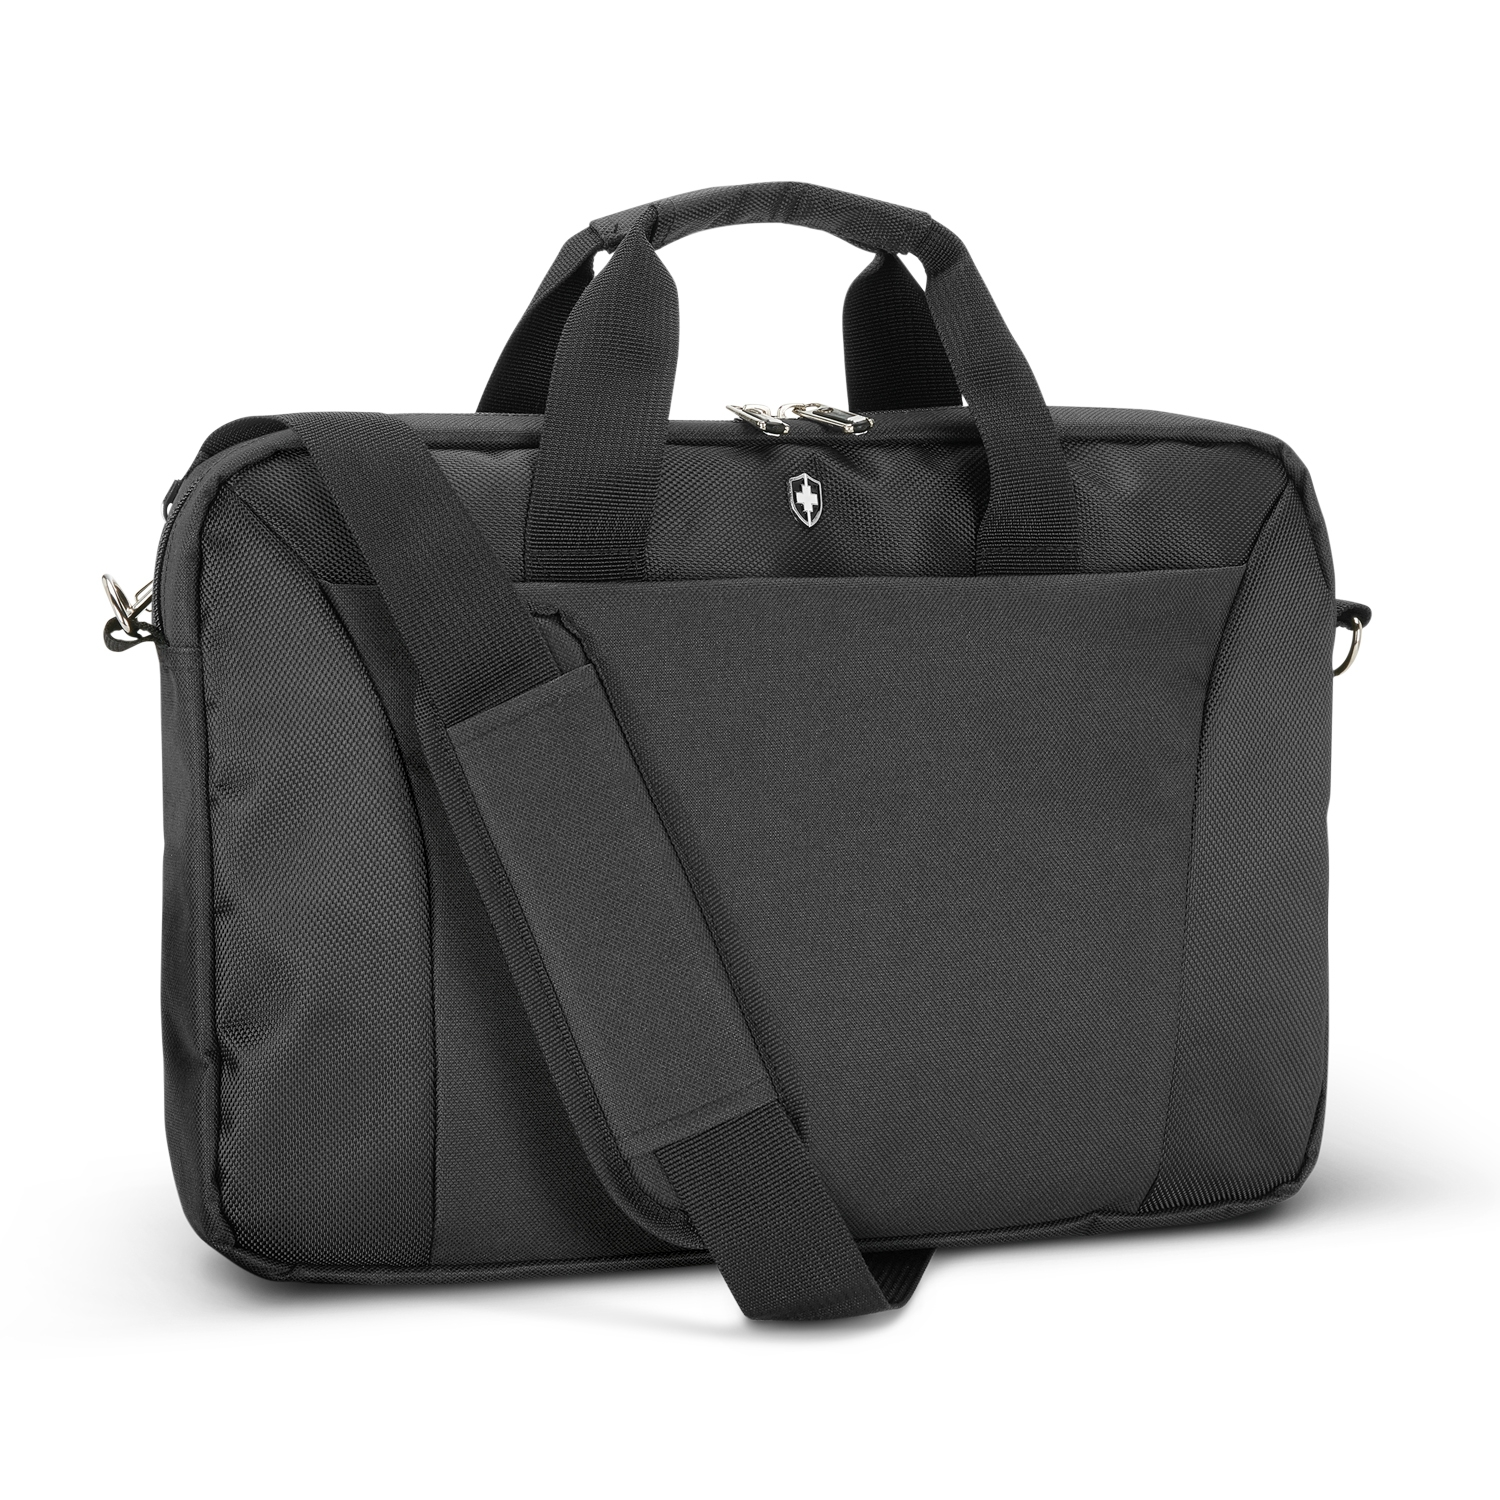 109998-0-Swiss Peak 38cm Laptop Bag